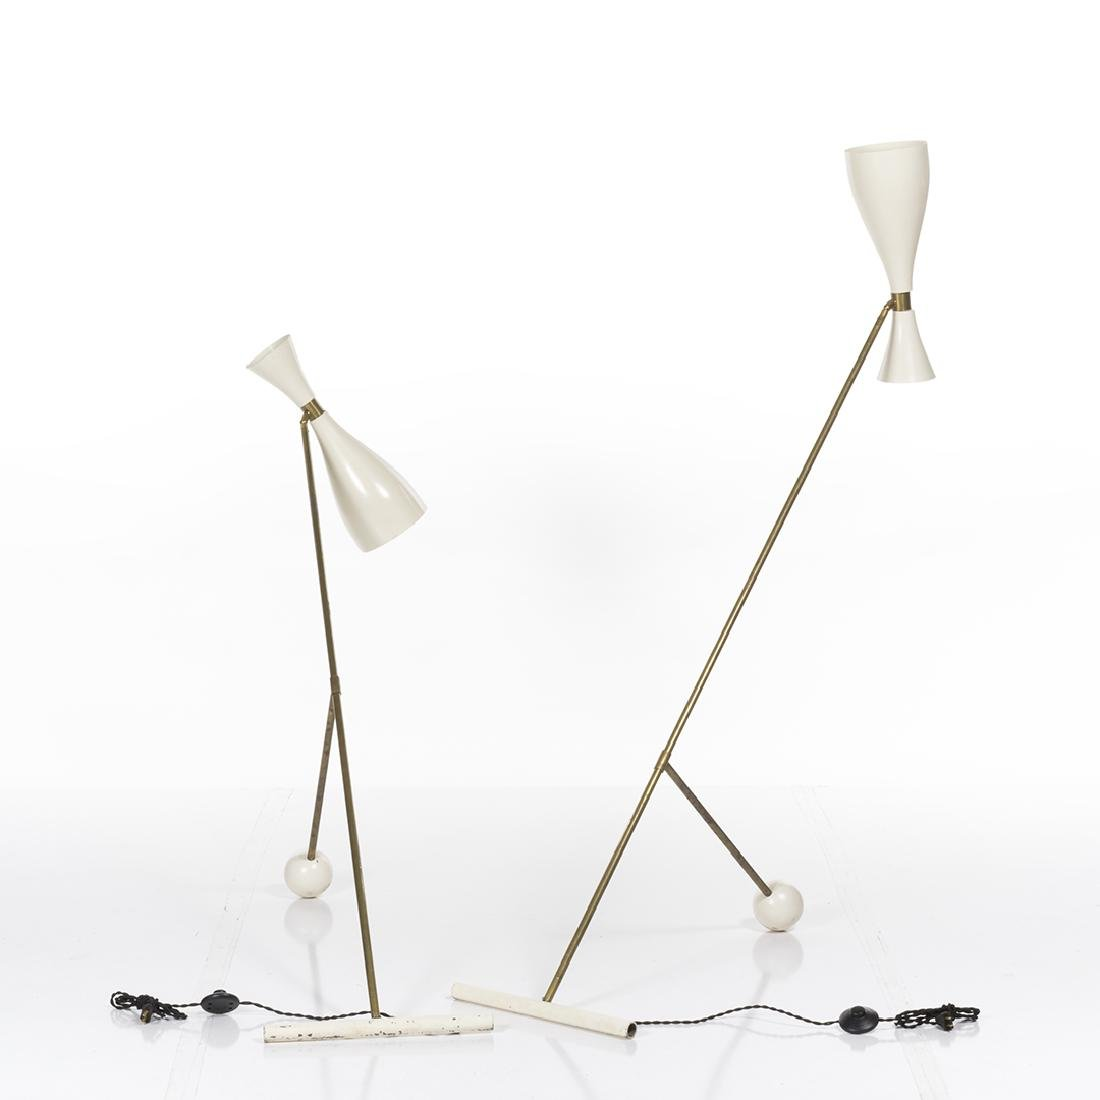 Italian Adjustable Floor Lamps (2) - 3